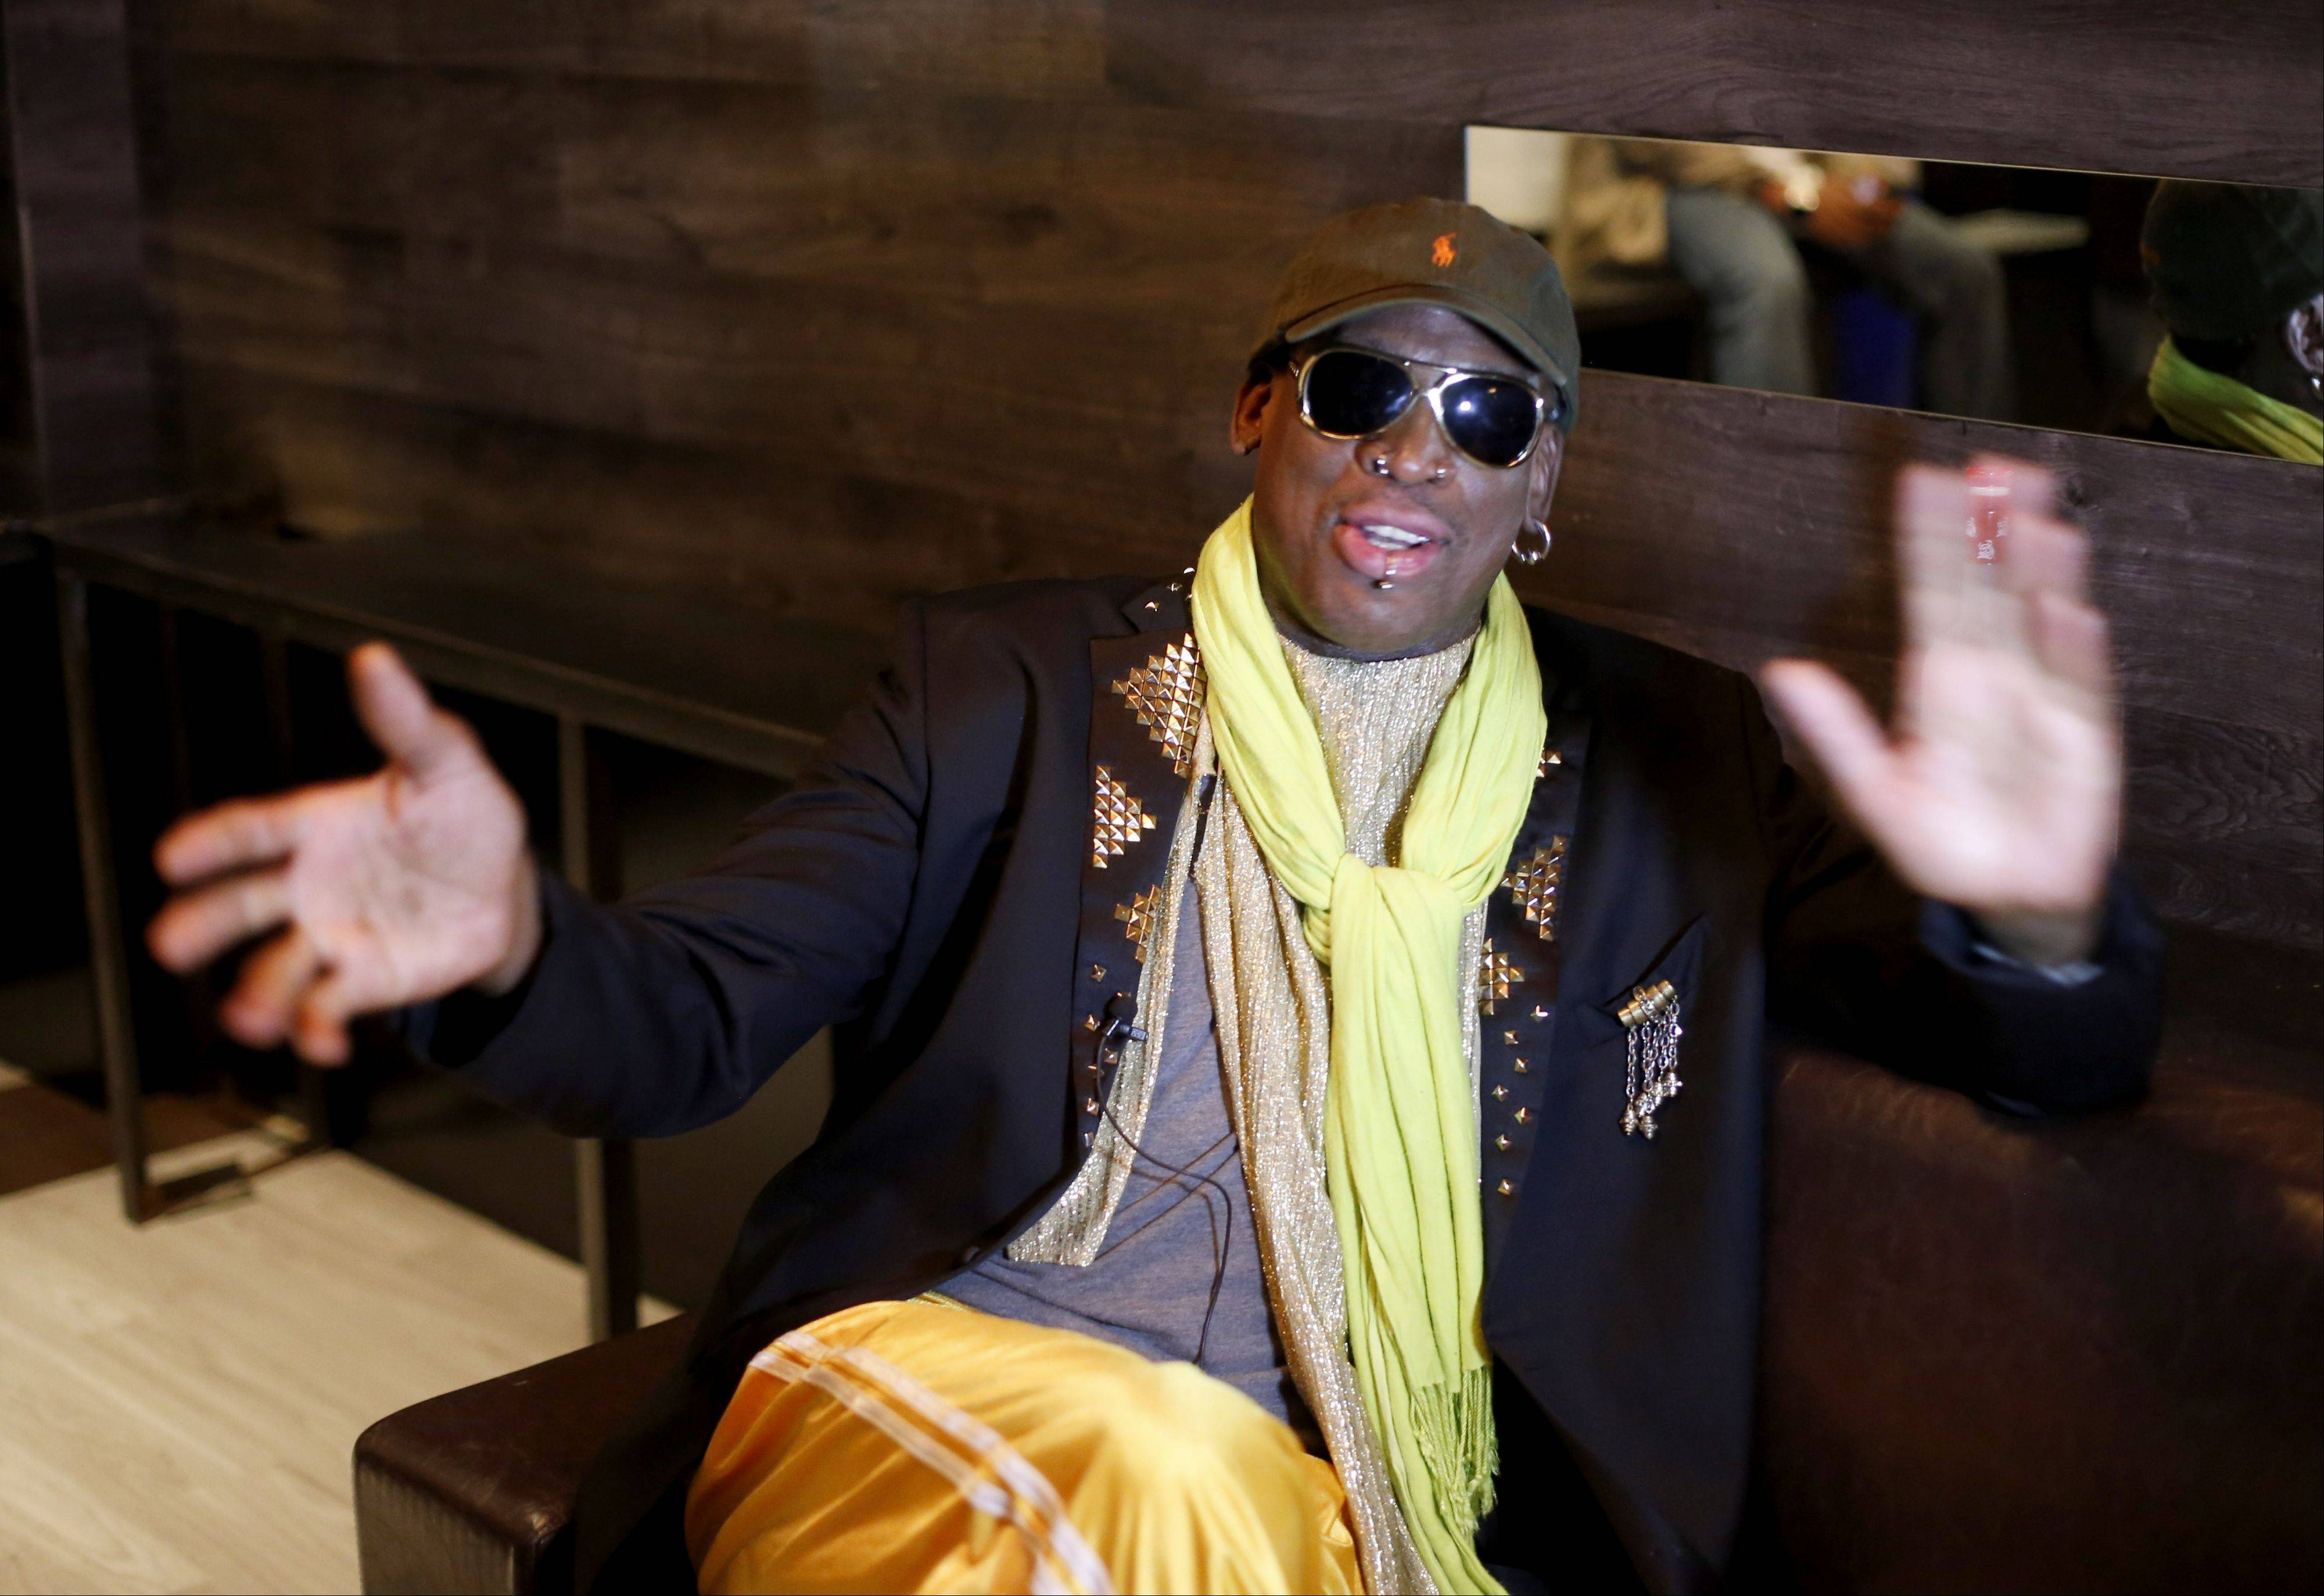 In this Thursday, Nov. 21, 2013 photo, Dennis Rodman gestues during an interview after a promotional event to pitch a vodka brand in Chicago. Rodman has been named GQ's least influential celebrity of 2013.